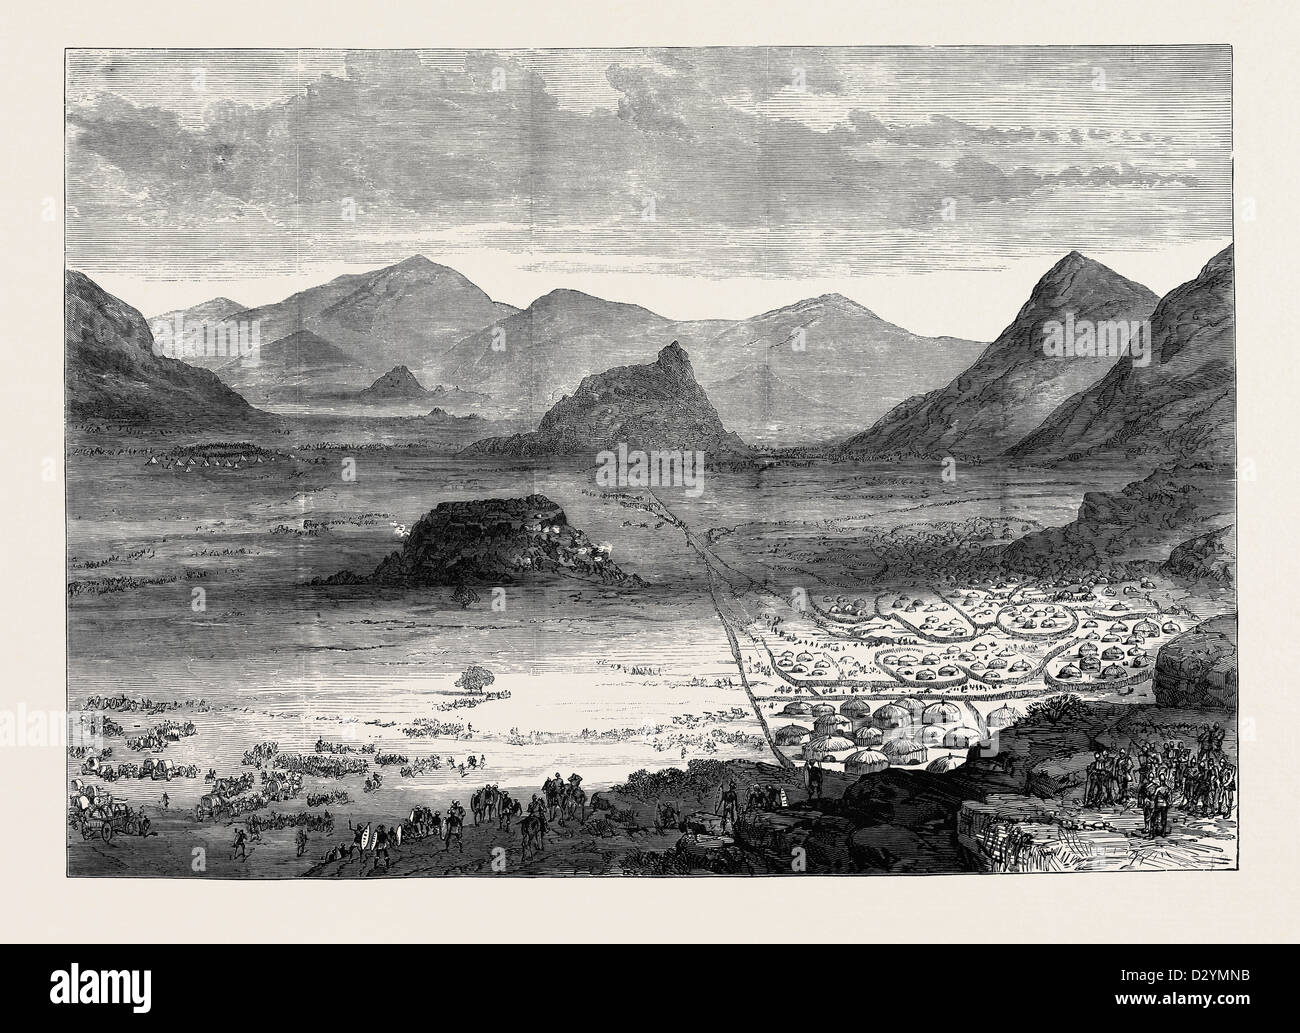 SECOKUNI'S TOWN IN THE TRANSVAAL FROM THE HEIGHTS OCCUPIED BY THE 94TH REGIMENT NOVEMBER 28 1879 - Stock Image